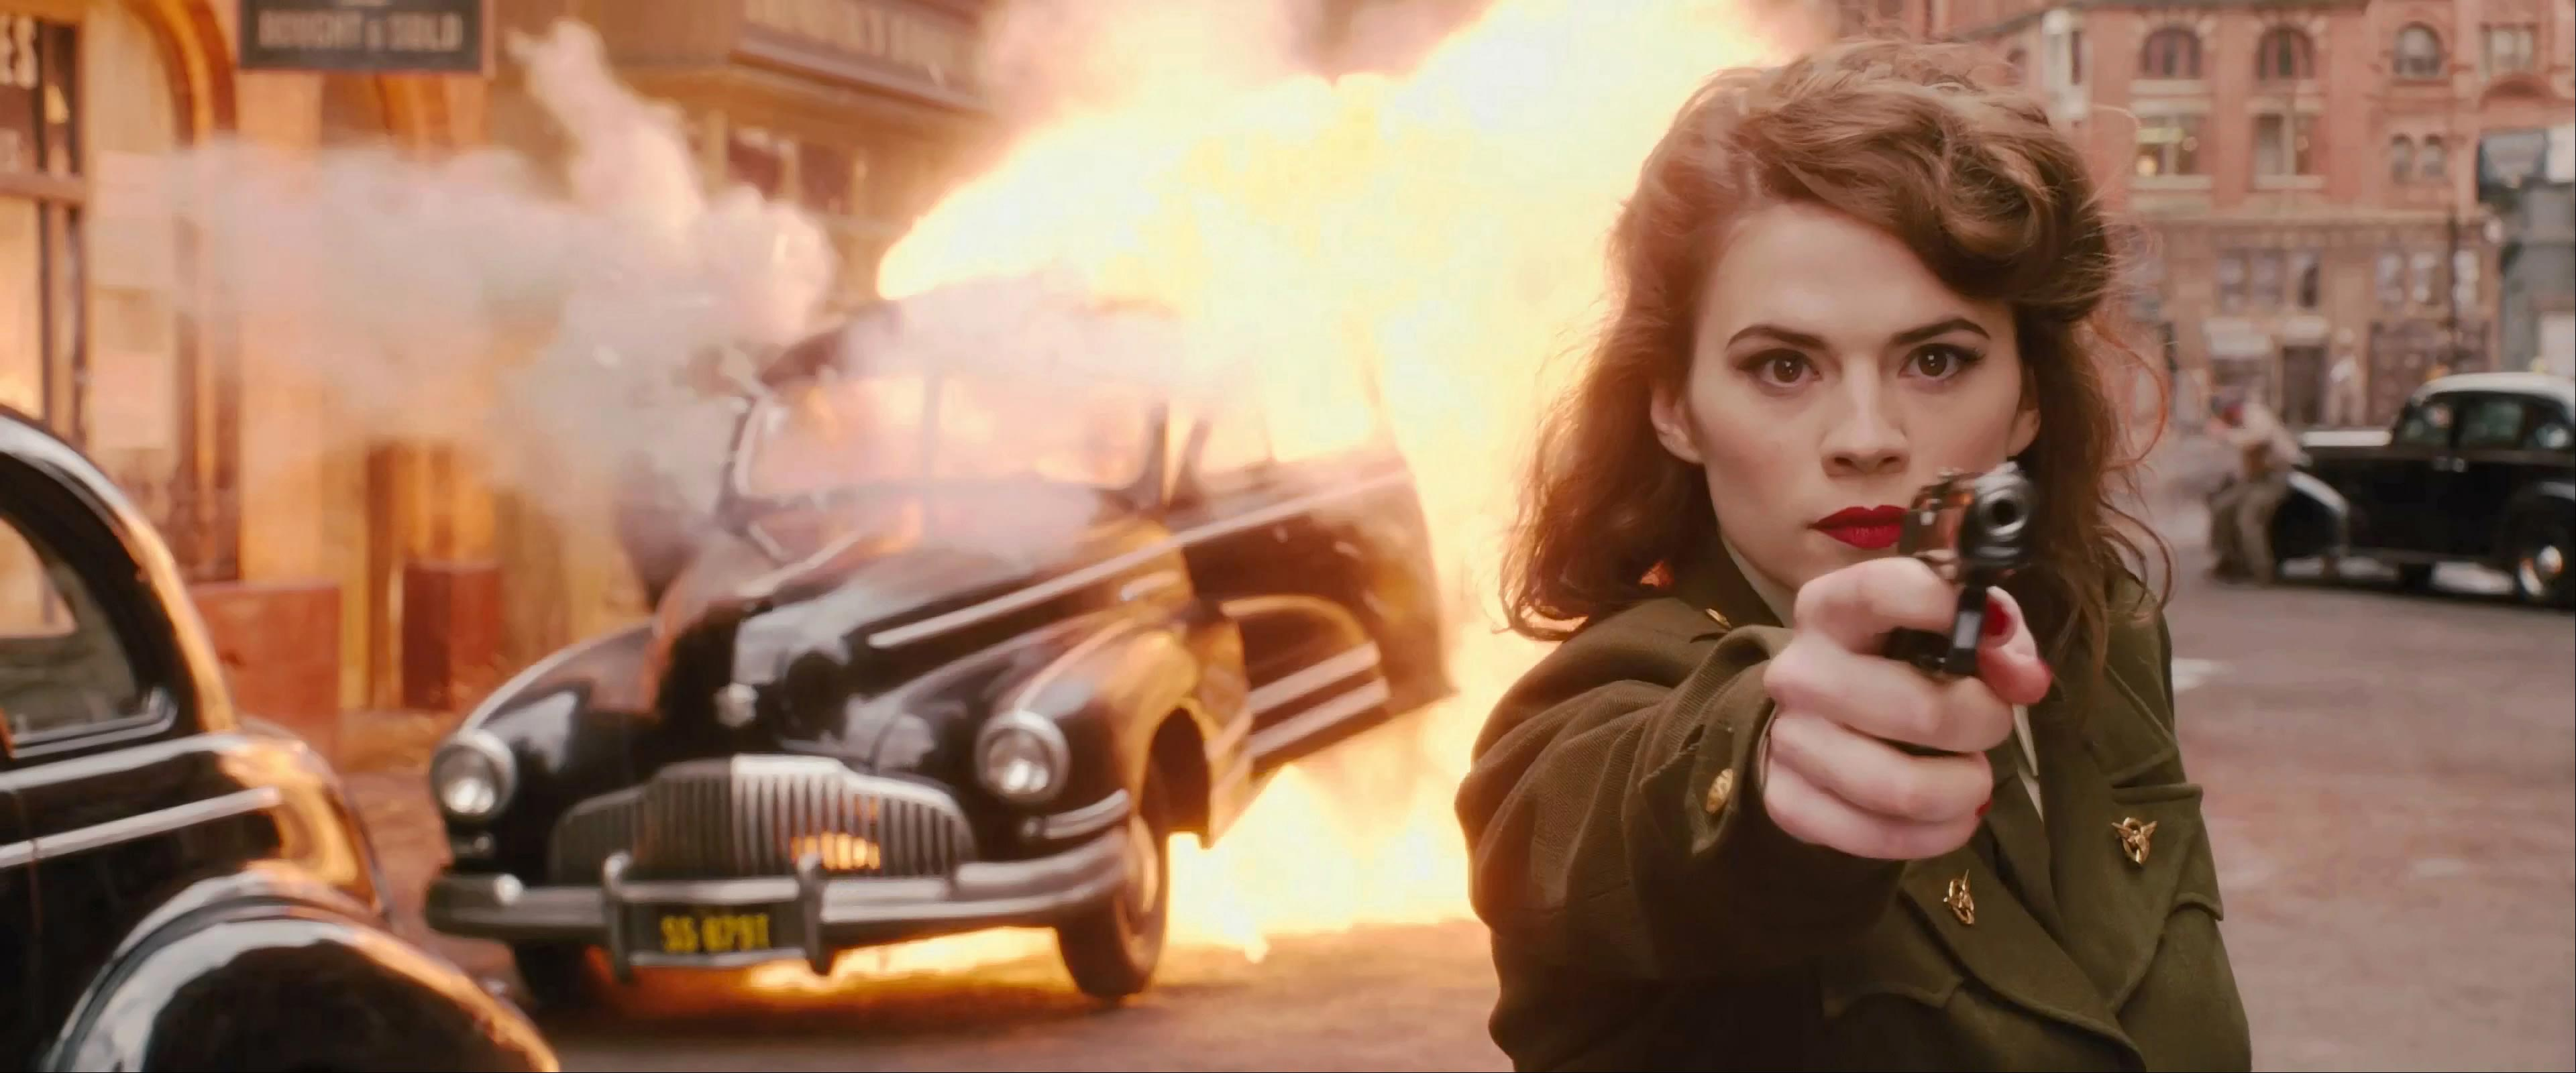 1023656-filmmakers-rely-codex-marvel-s-agent-carter